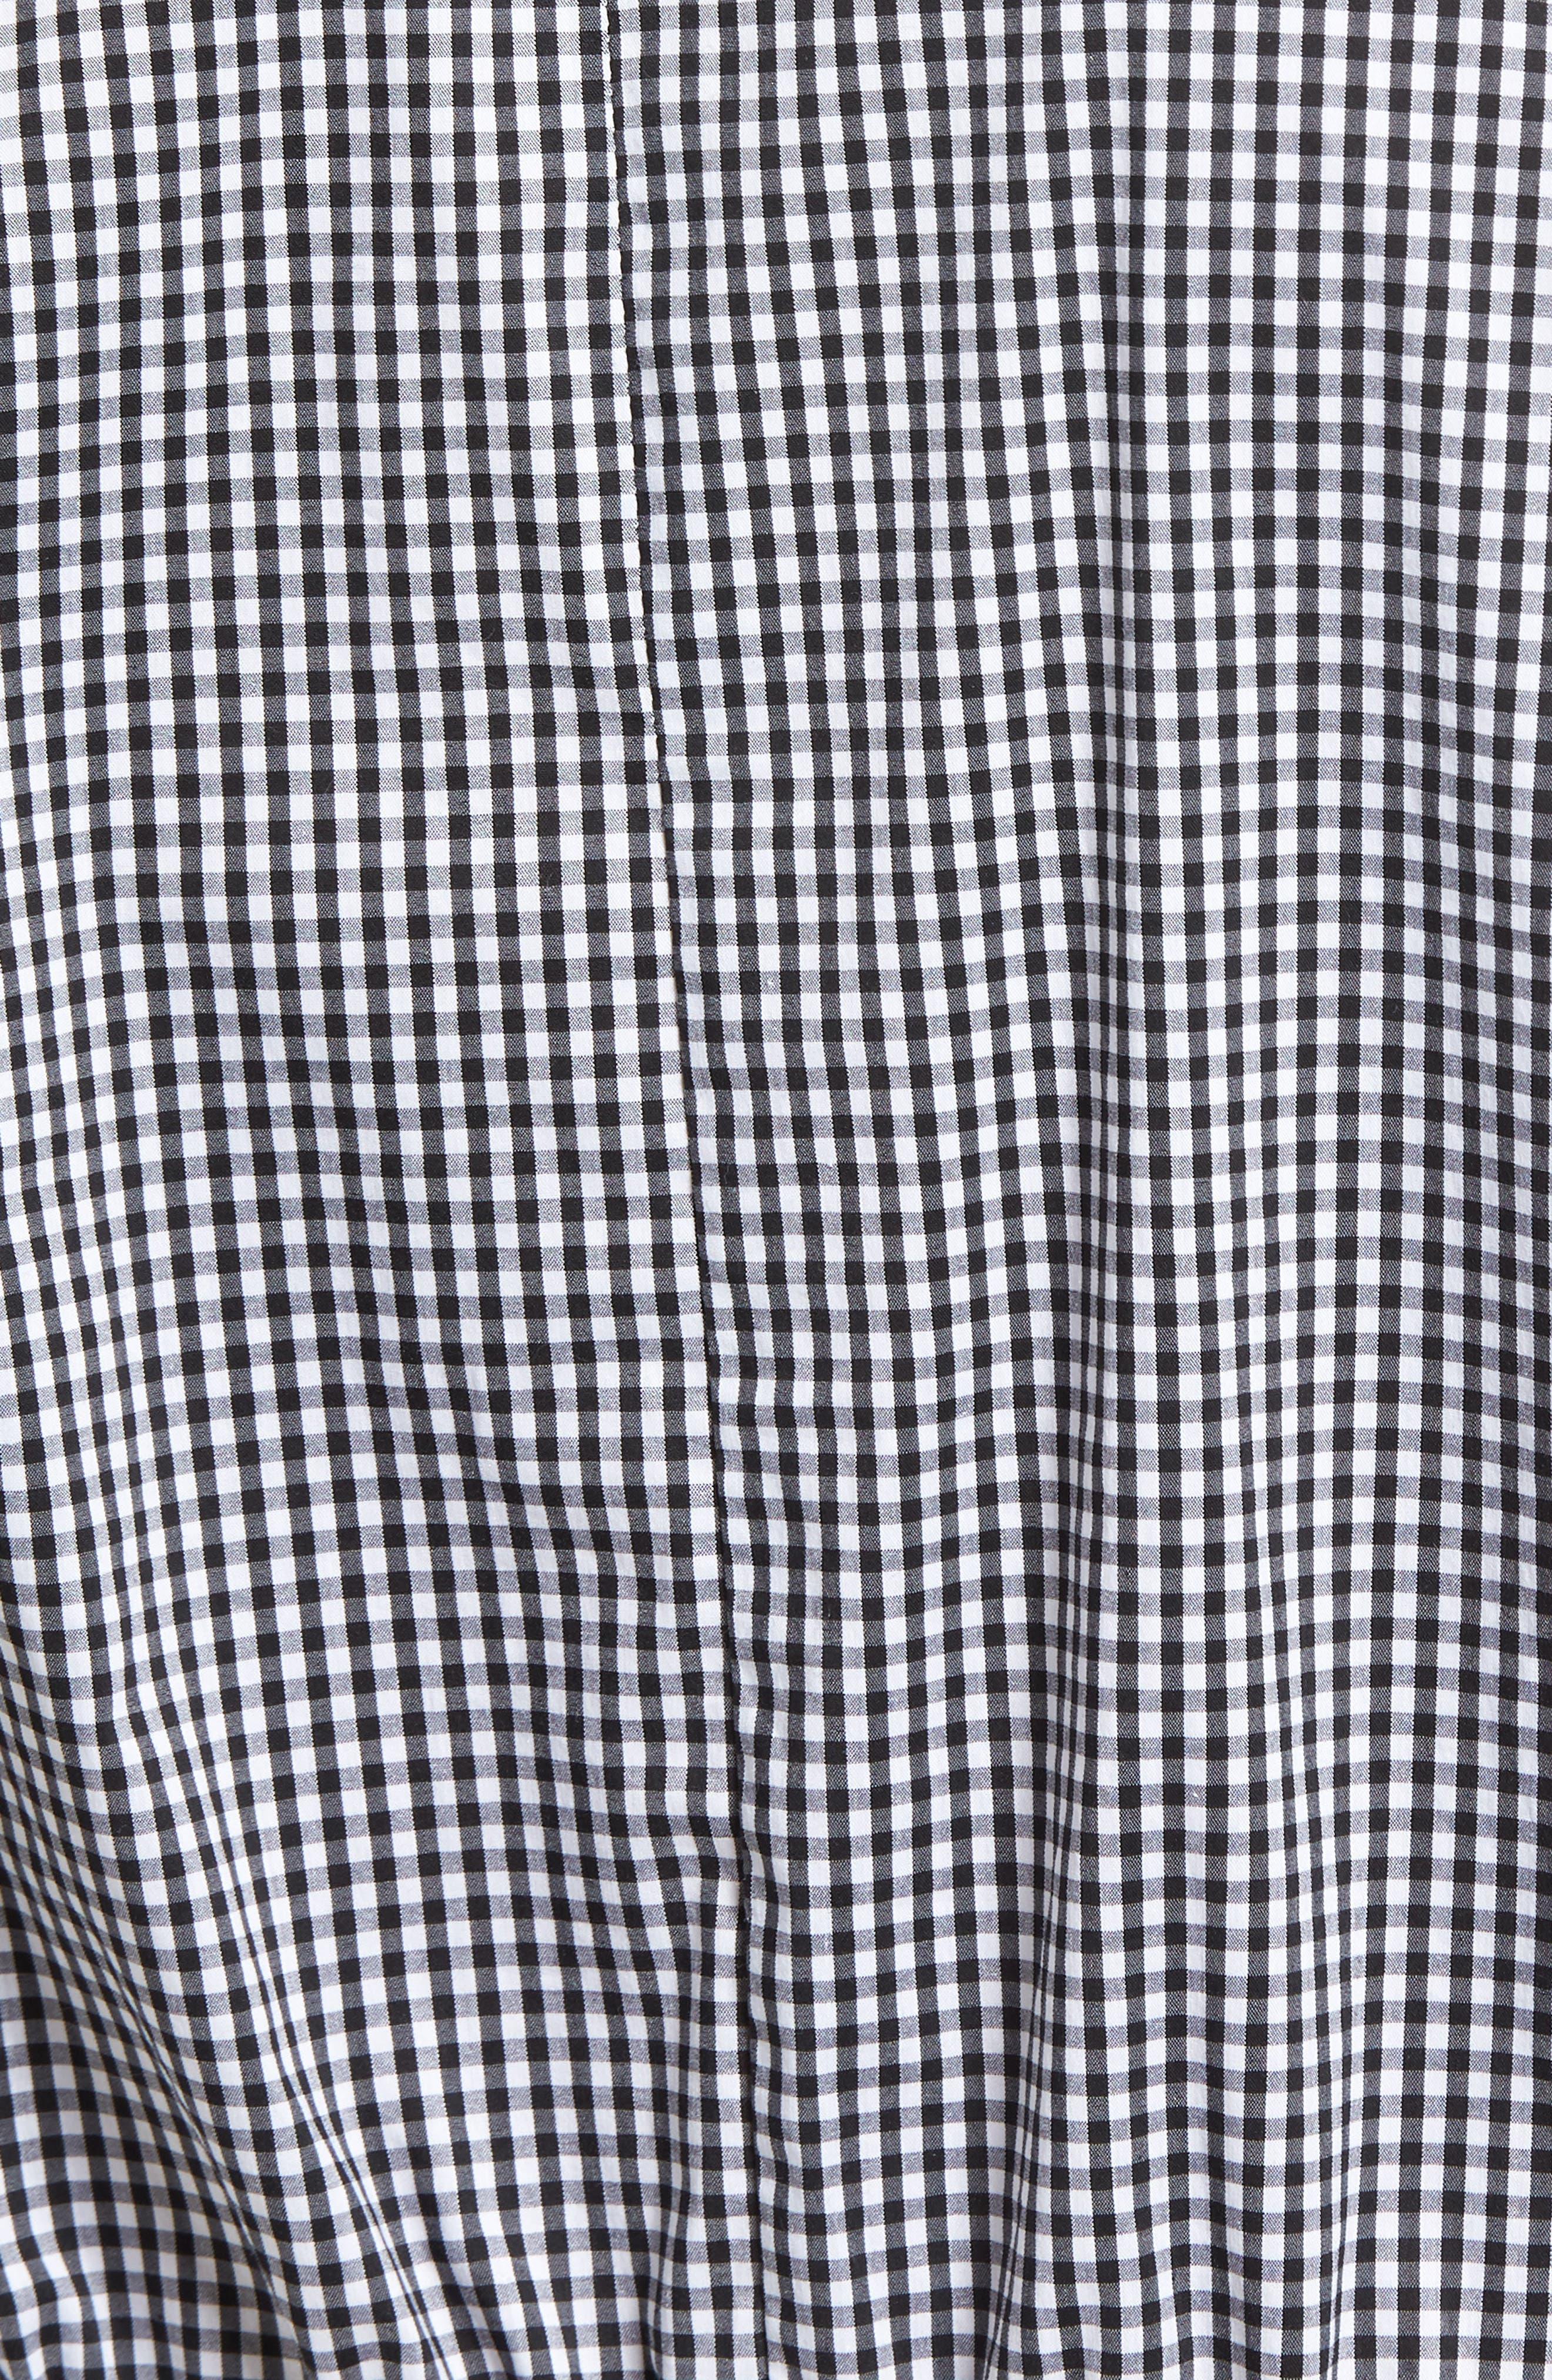 Bishop + Young Ruched Sleeve Blouse,                             Alternate thumbnail 5, color,                             Gingham